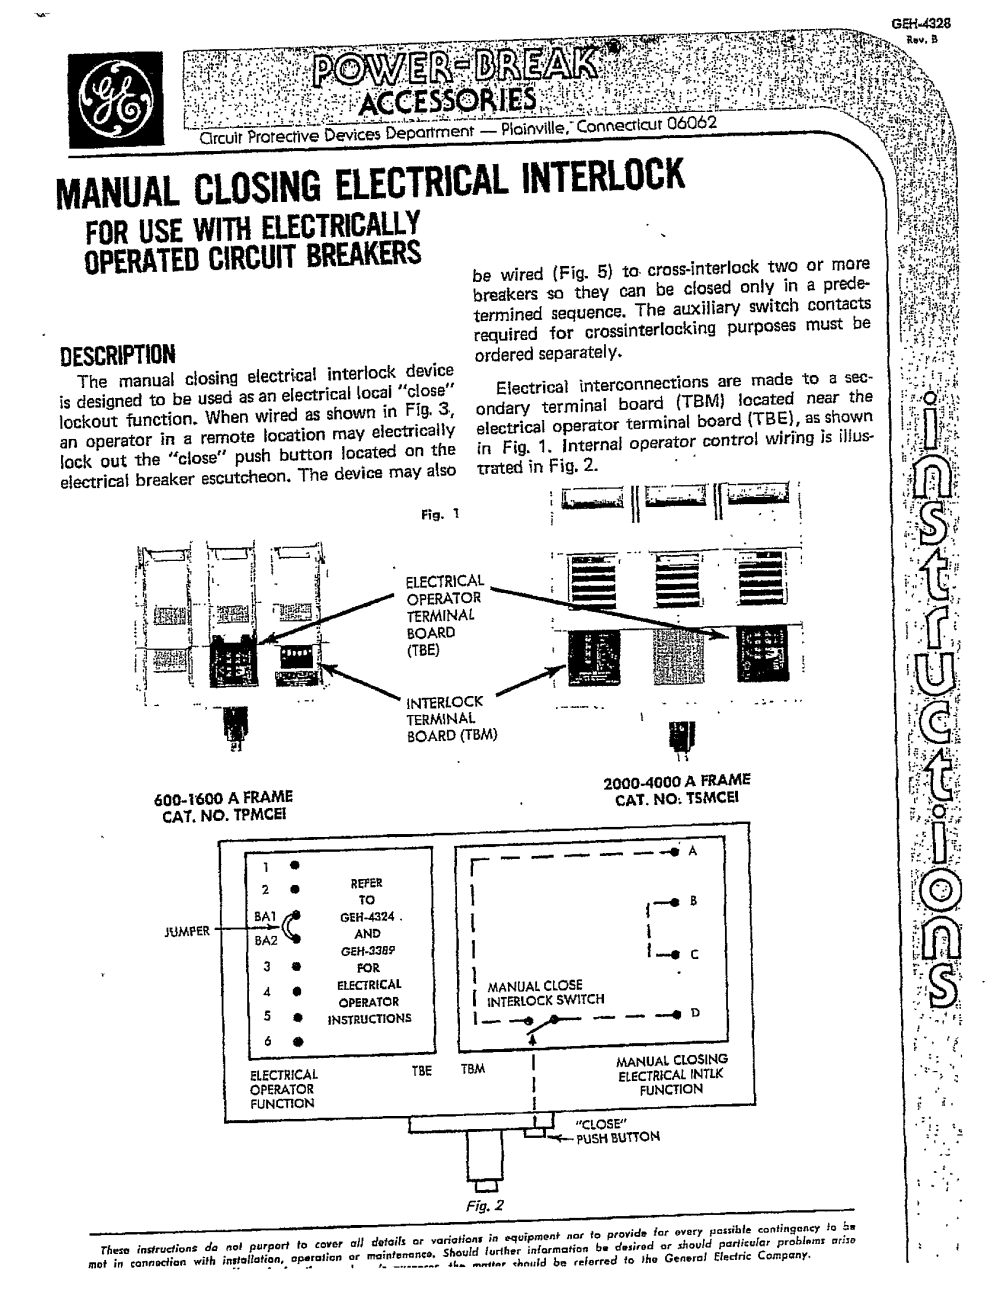 medium resolution of geh 4328 manual closing electrical interlock manual general electric